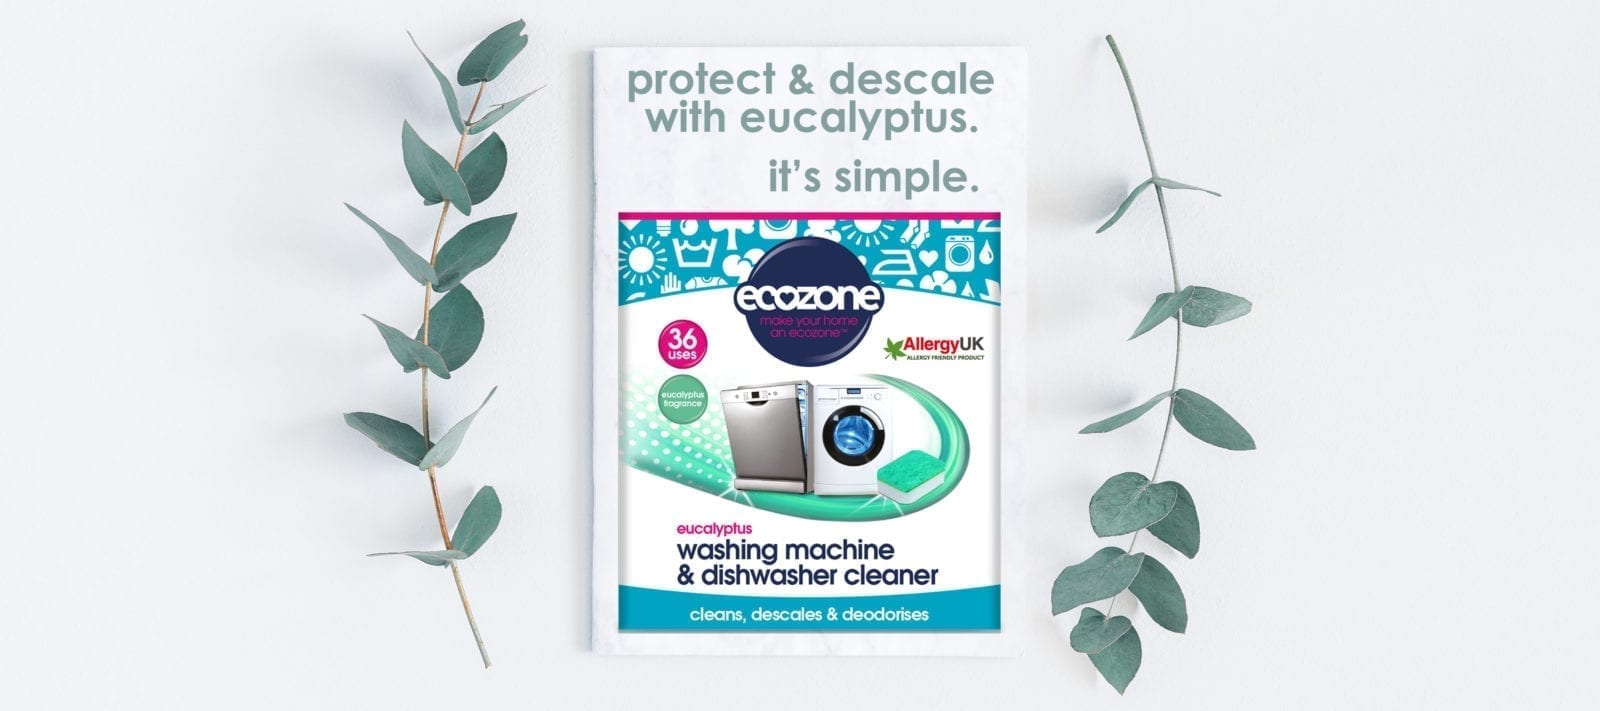 OFFICIAL home of Ecozone washing machine cleaner eucalyptus